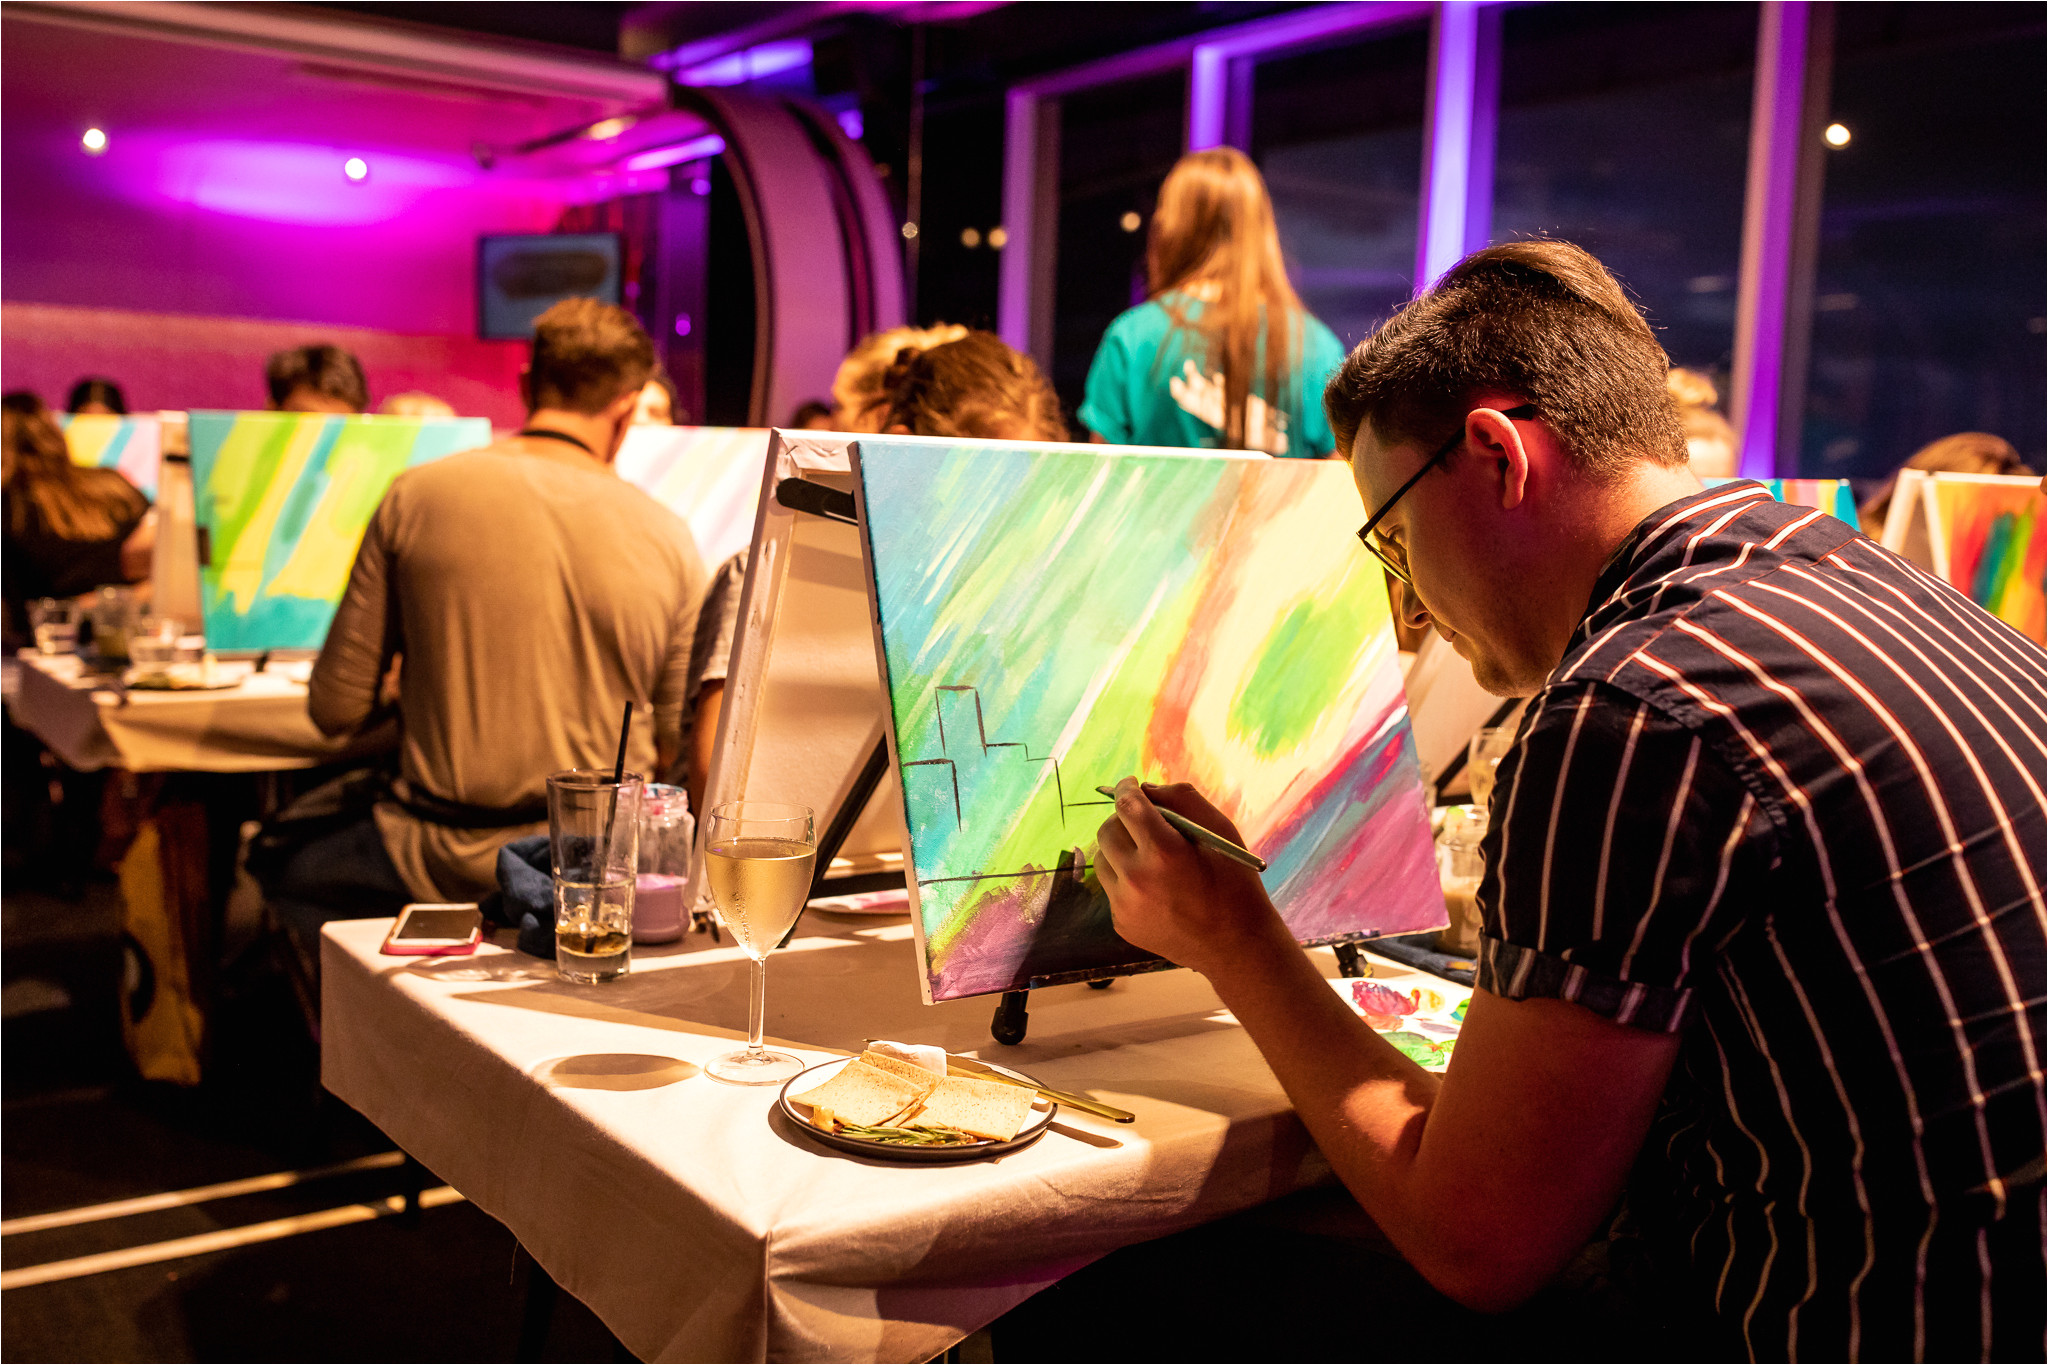 people painting on canvas and drinking wine